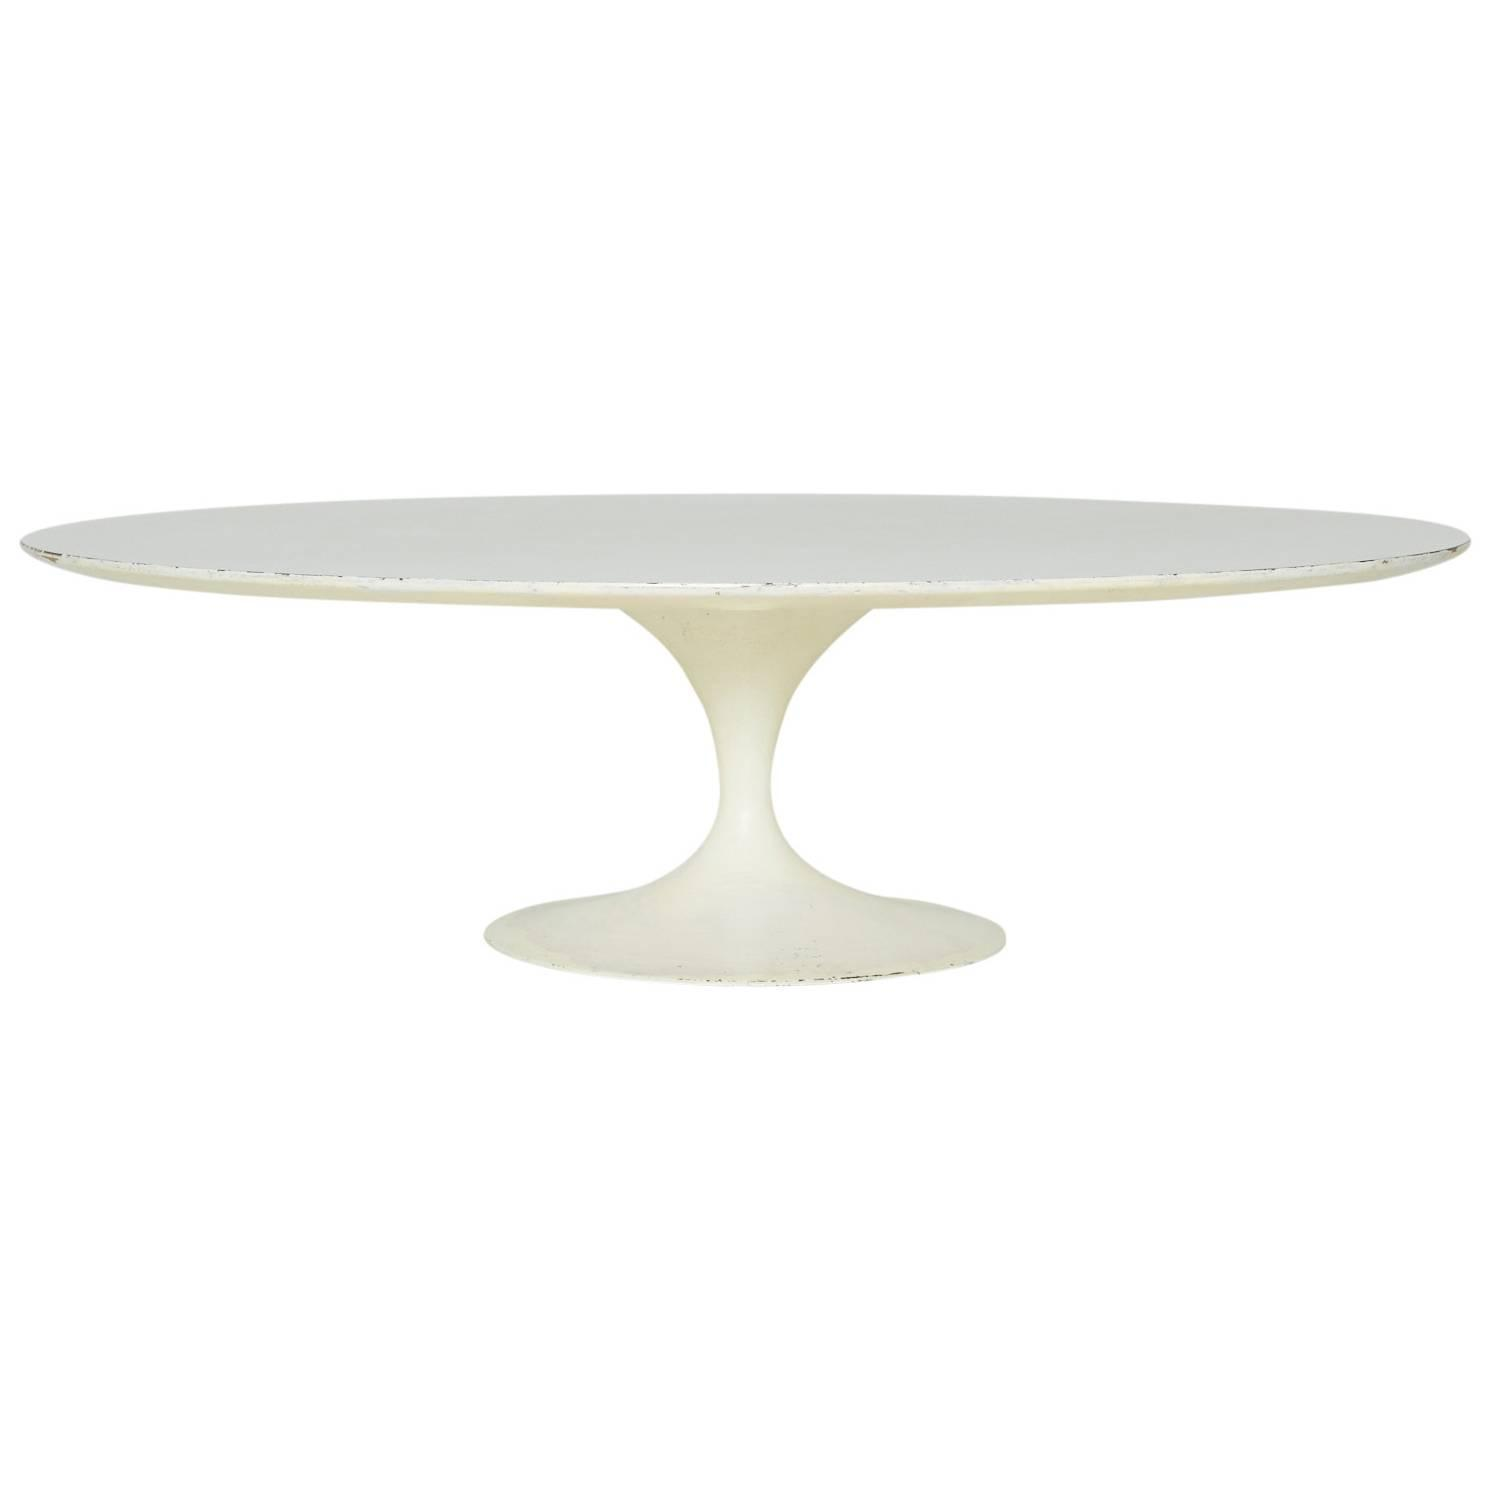 Tulip Coffee Table By Eero Saarinen For Knoll 1950s On Sale For Sale At 1stdibs